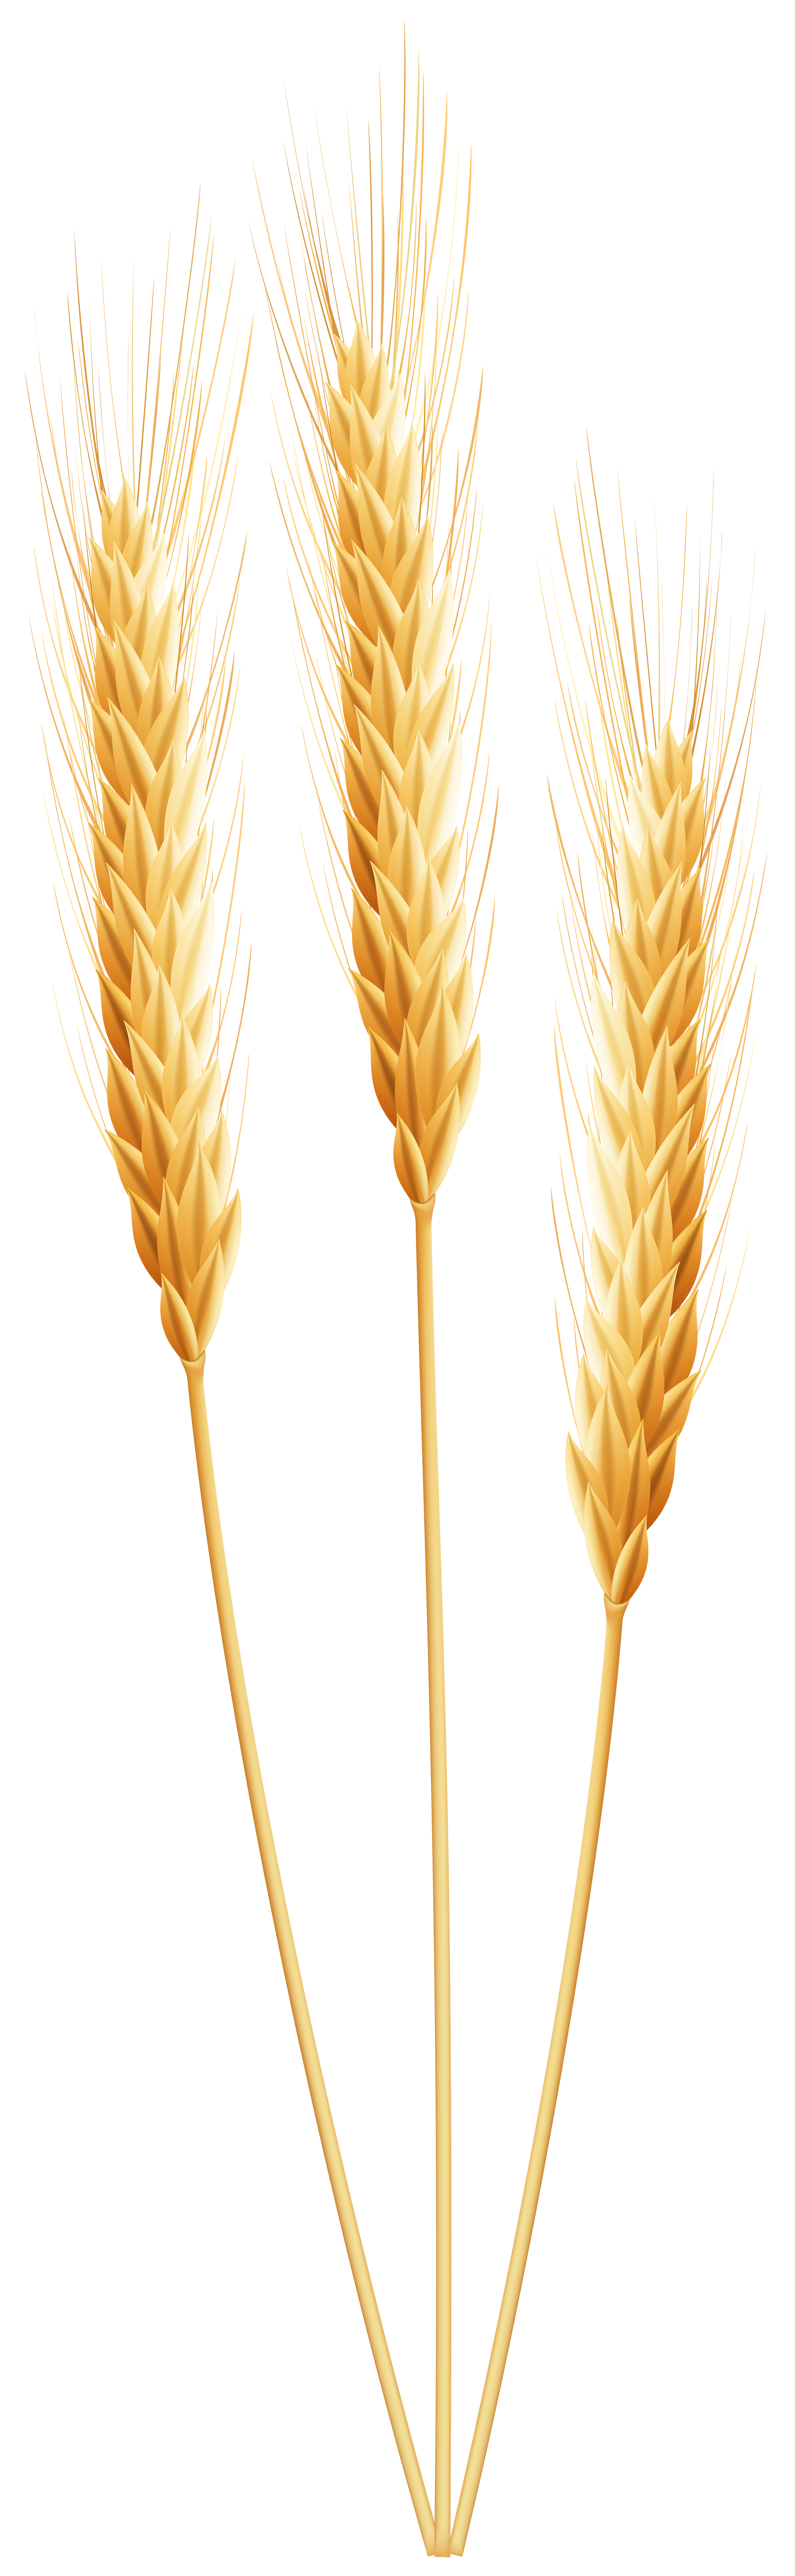 Grain clipart common.  collection of wheat